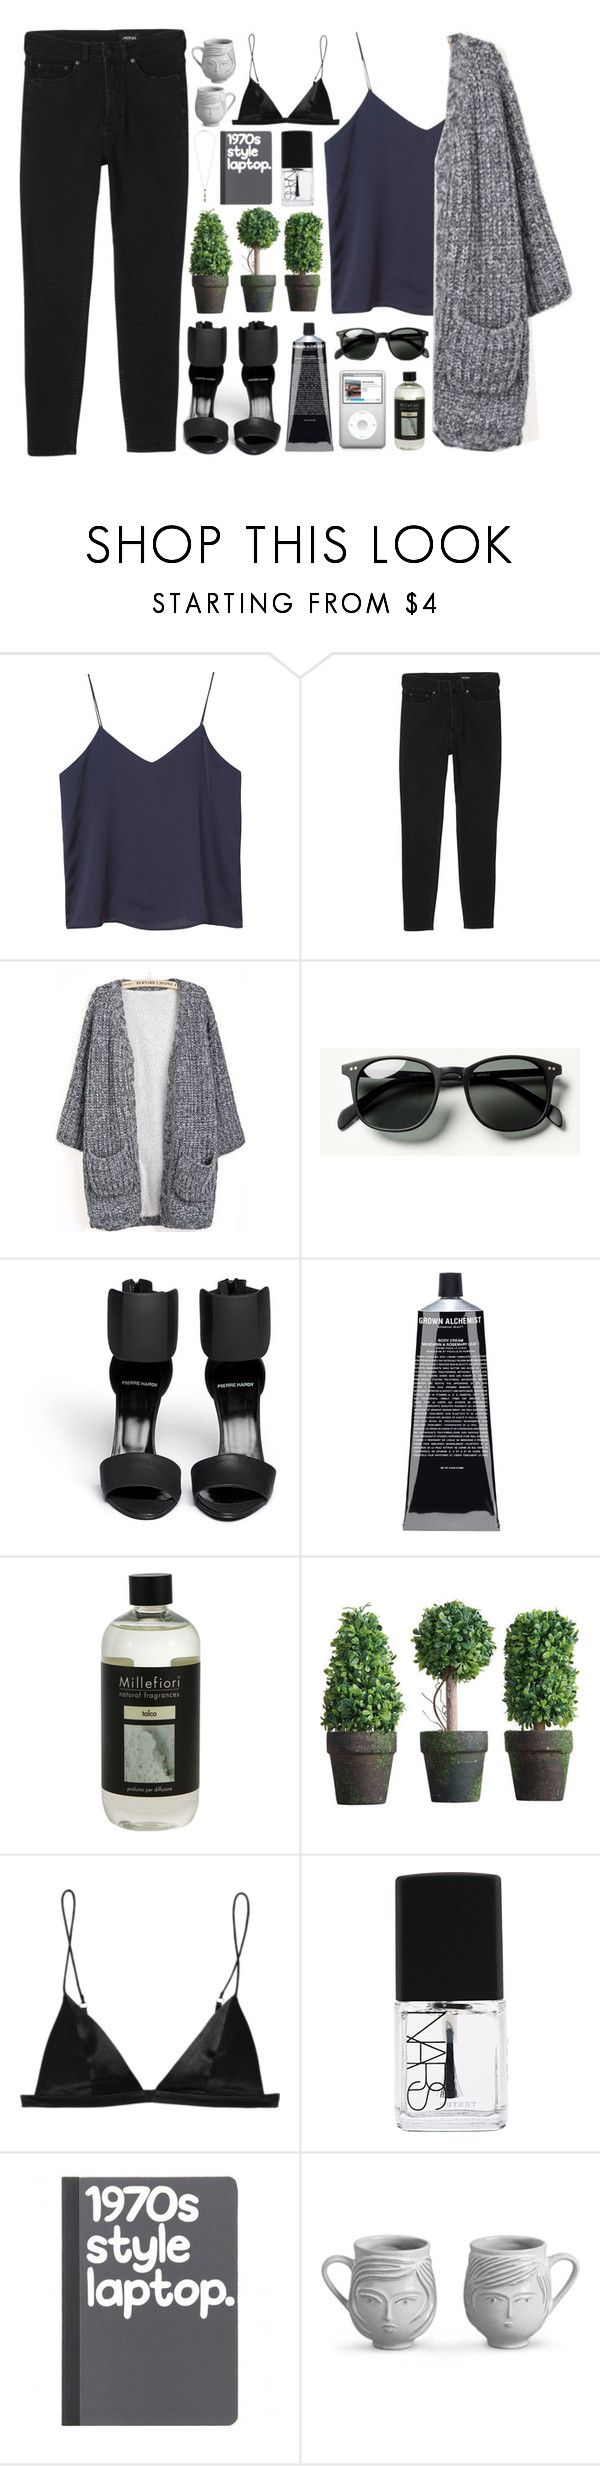 """IM SO FANCY"" by smoothpeanutbutter ❤ liked on Polyvore featuring Monki, Waverly, Pierre Hardy, Grown Alchemist, Millefiori, T By Alexander Wang, NARS Cosmetics, Jonathan Adler and Topshop"